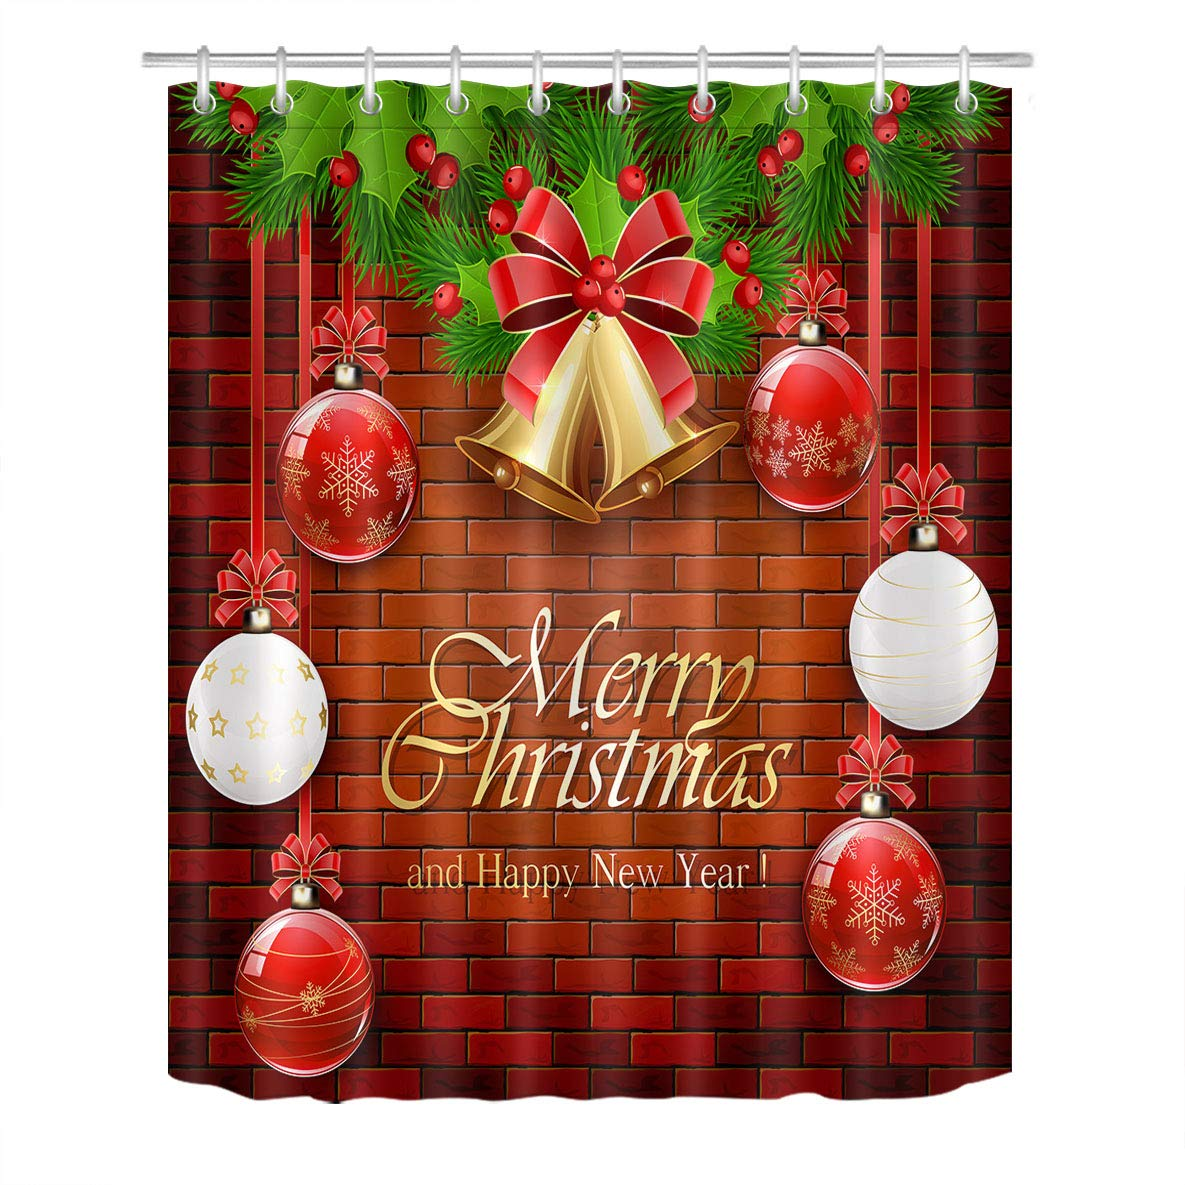 Lb Christmas Balls Shower Curtain Set Bells Hang On Rustic Brick Wall Bathroom Curtain With Hooks Holiday Decorations 60x72 Inch Waterproof Polyester